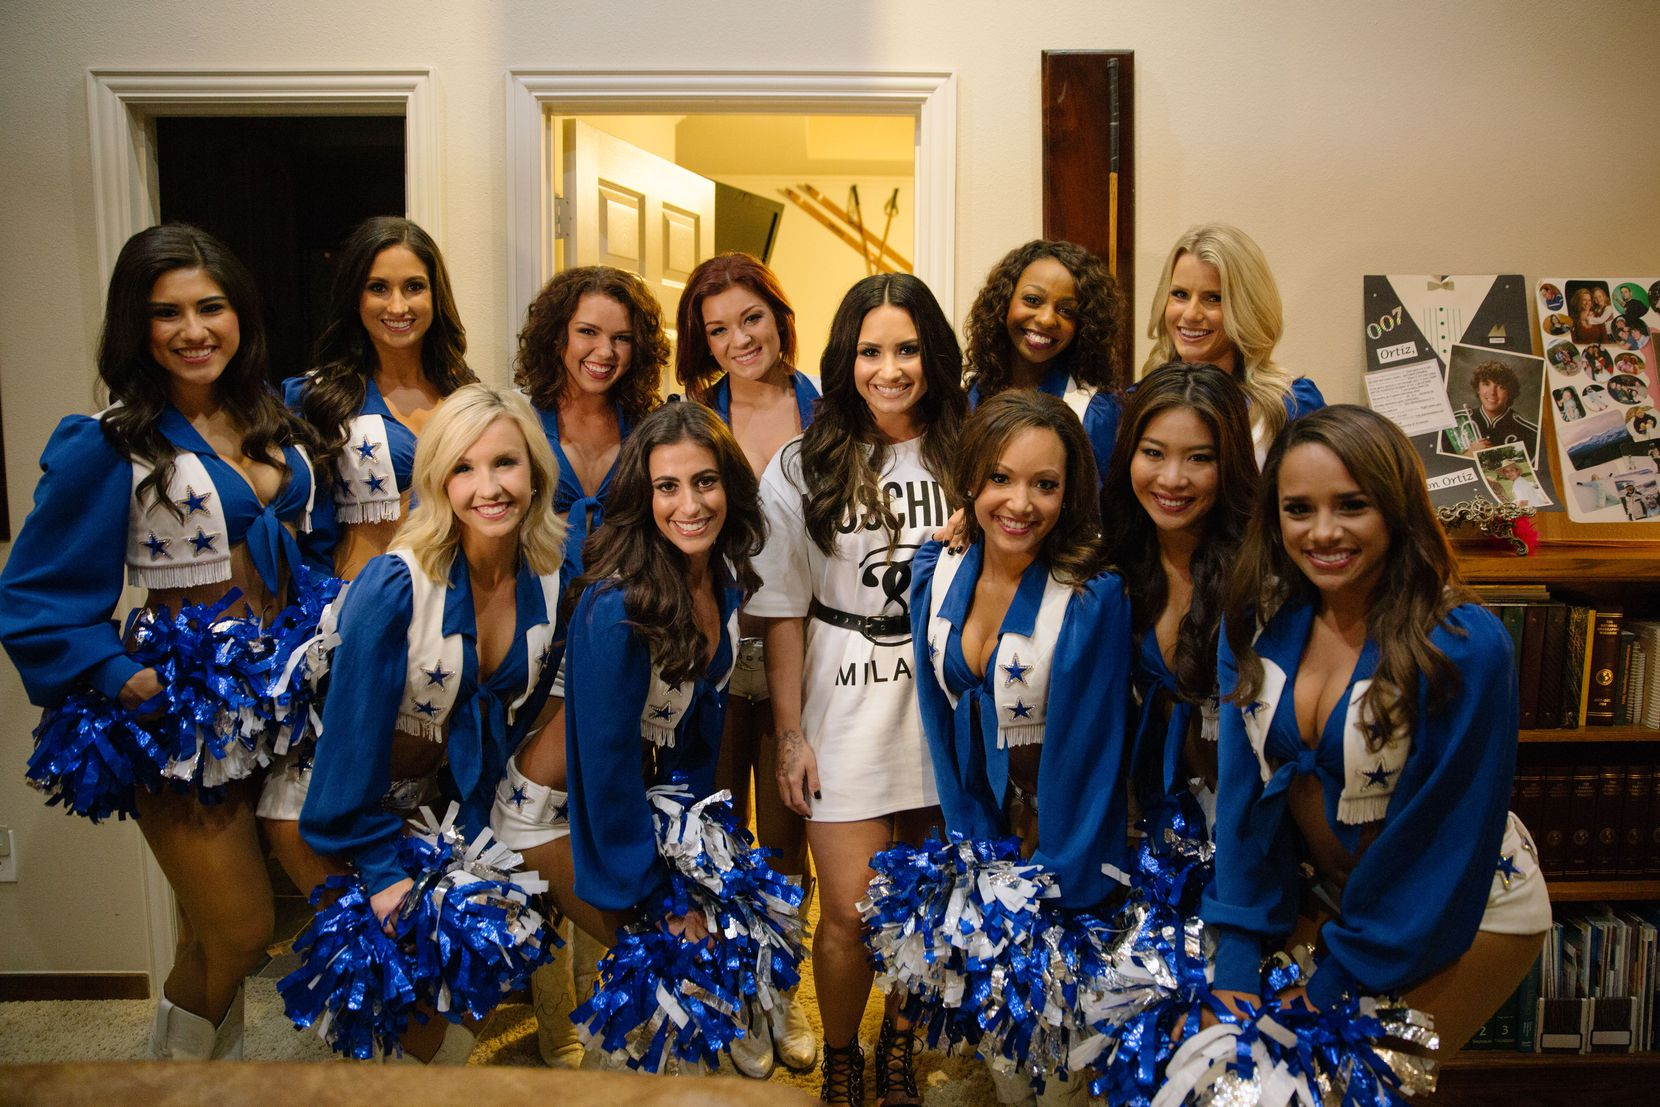 Singer and actress Demi Lovato posed with her special guests, the Dallas Cowboys Cheerleaders, at a house party in Southlake. The squad greeted Lovato when she arrived and joined her onstage for the show.